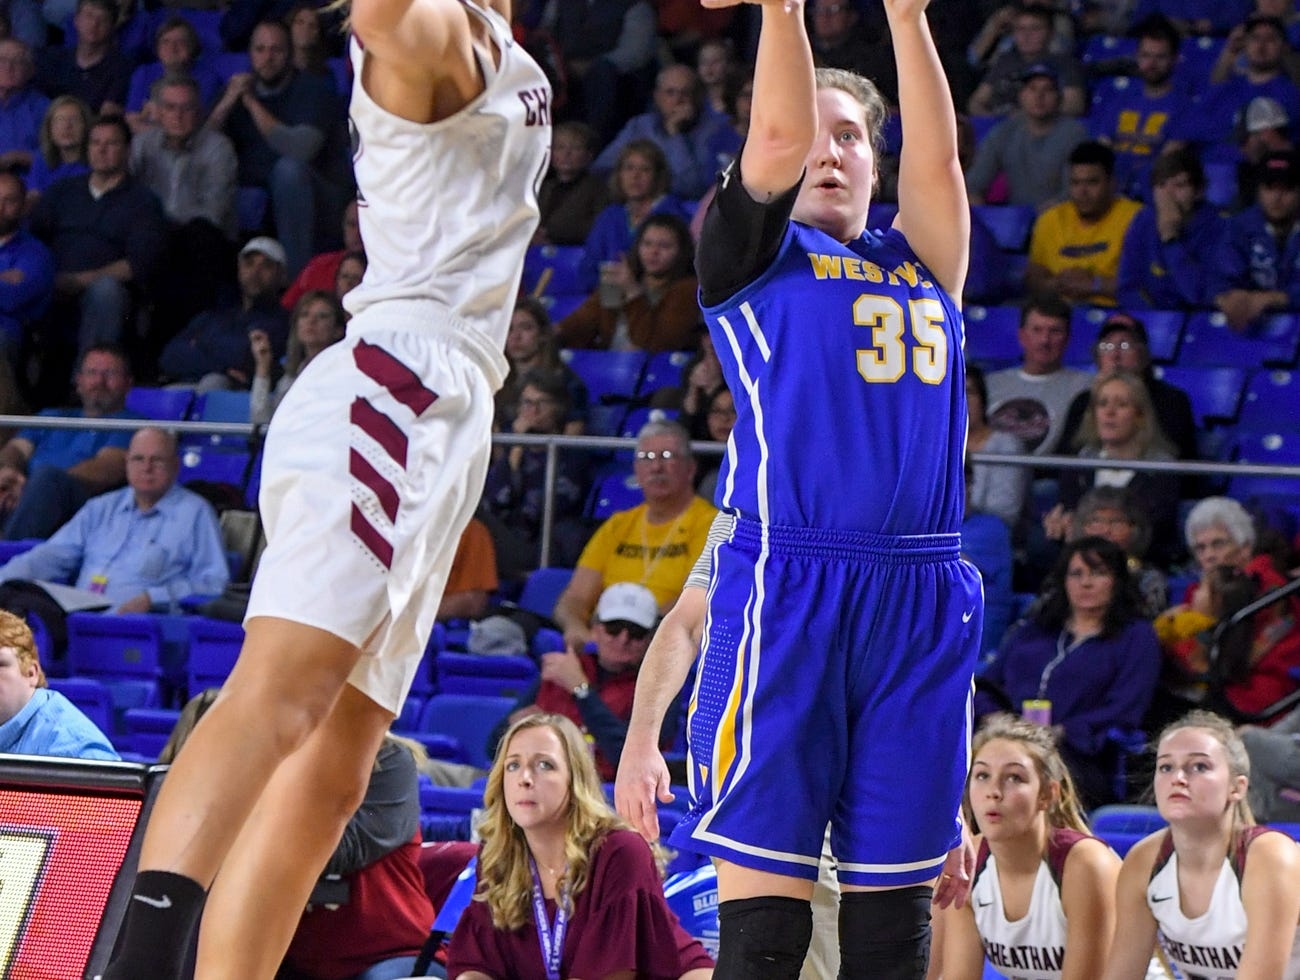 Westview's Avery Leyhue (35) pulls up for a three as a Cheatam County defender reaches up to block her shot during their Class AA championship game, Saturday, March 9, 2019, in Murfreesboro.